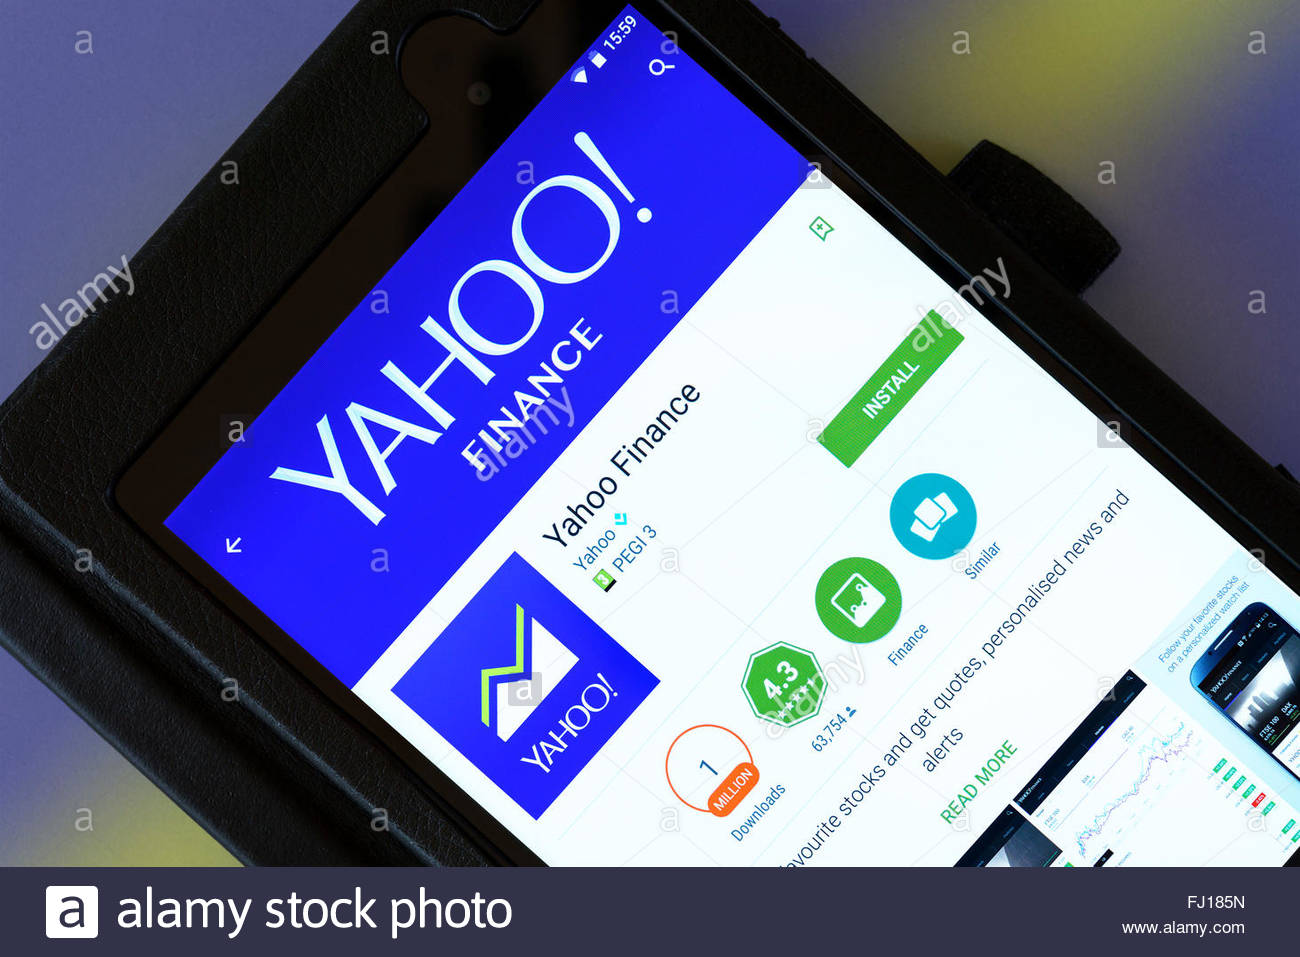 Yahoo Finance Stock Photos & Yahoo Finance Stock Images - Alamy